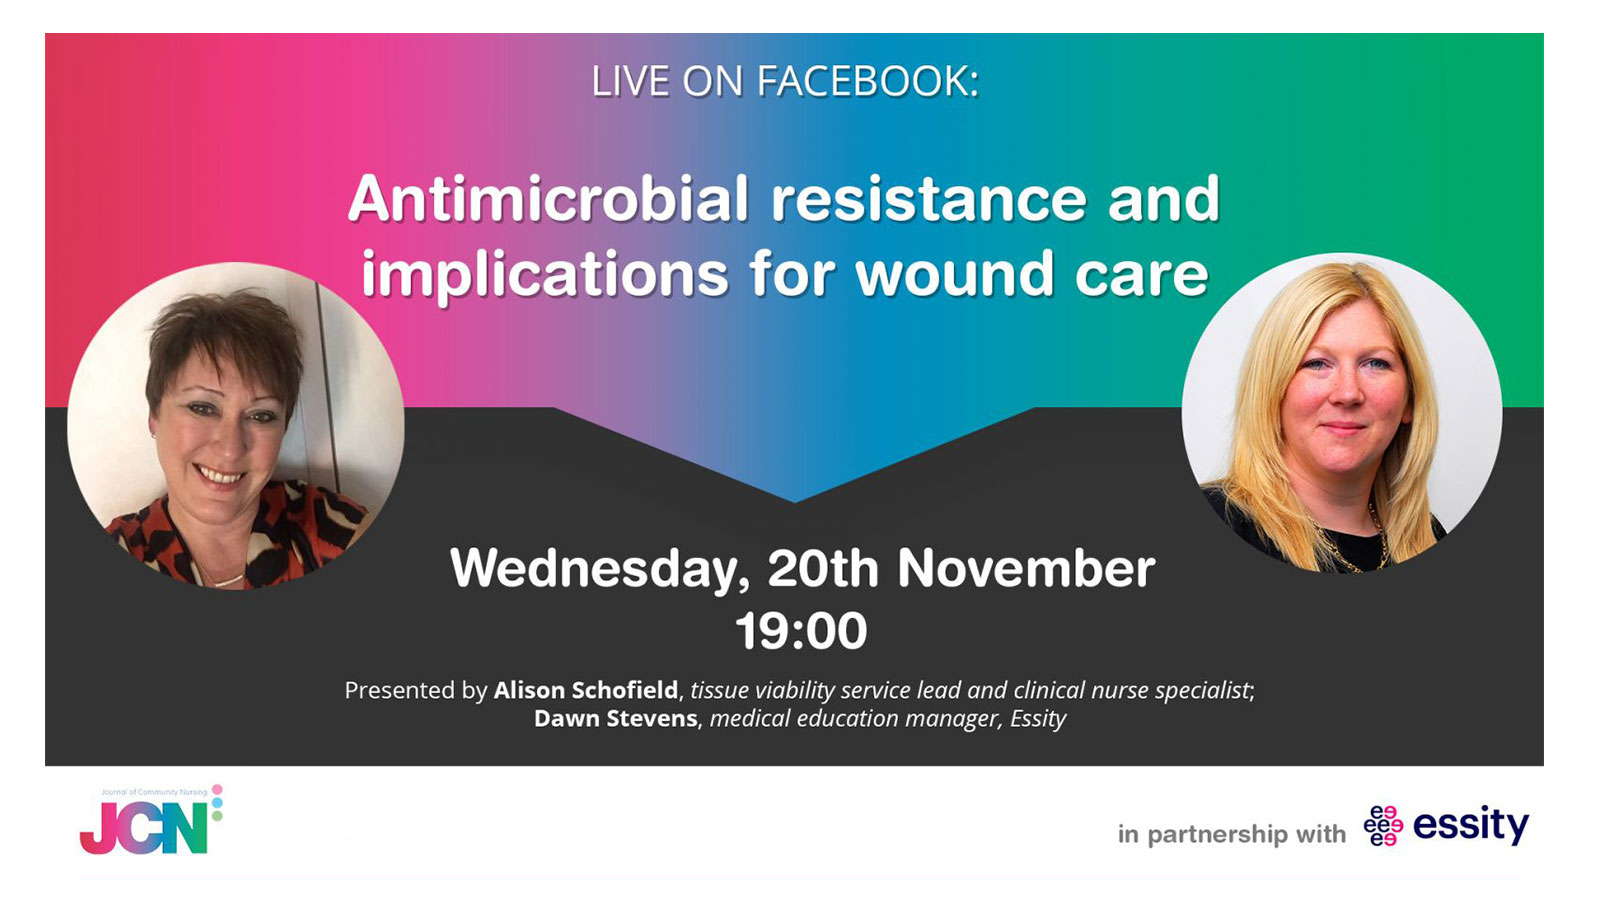 Facebook Live: Antimicrobial resistance and implications for wound care